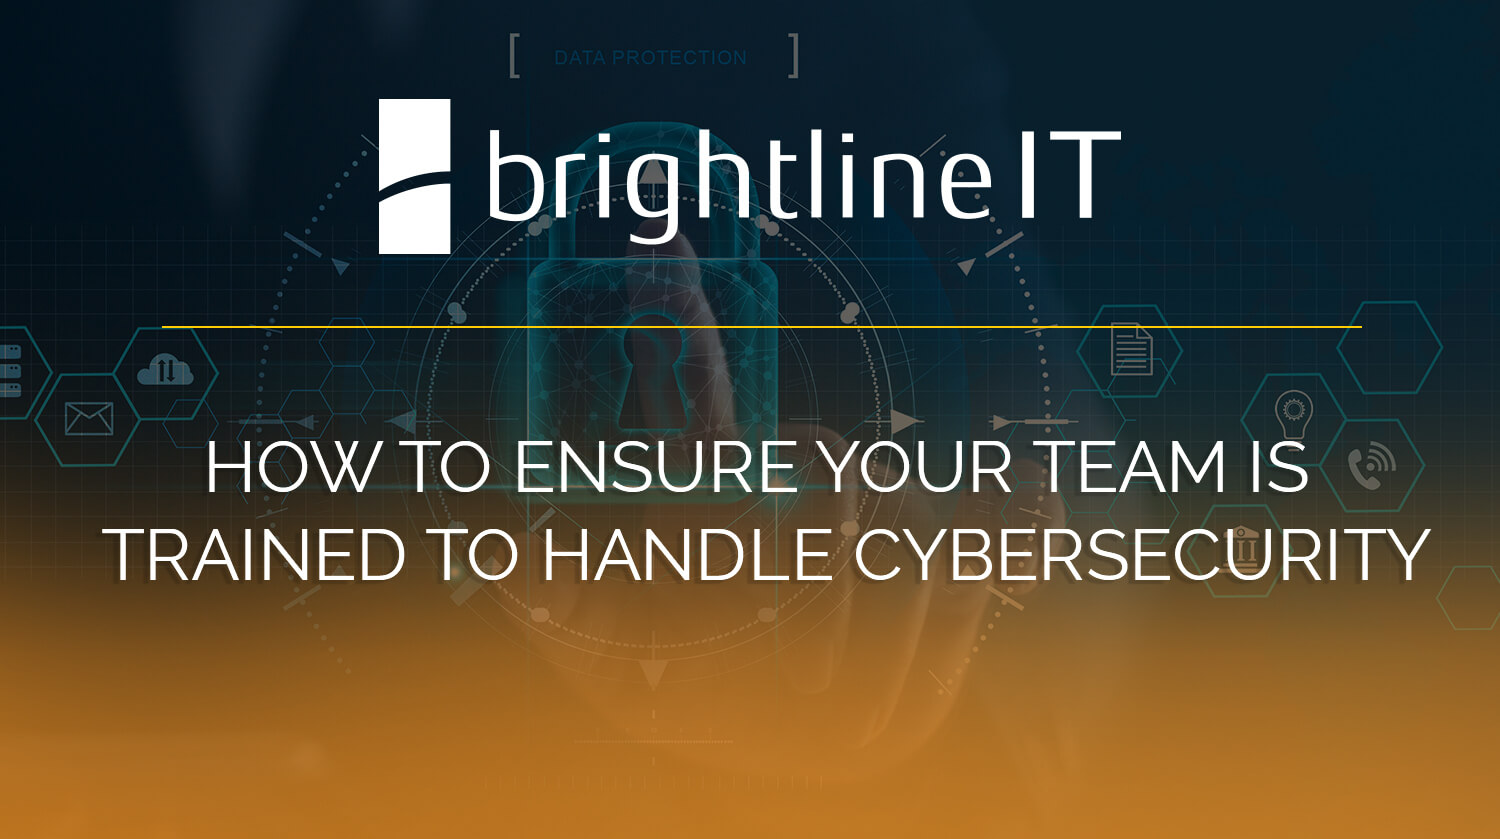 how to ensure your team is trained to handle cybersecurity